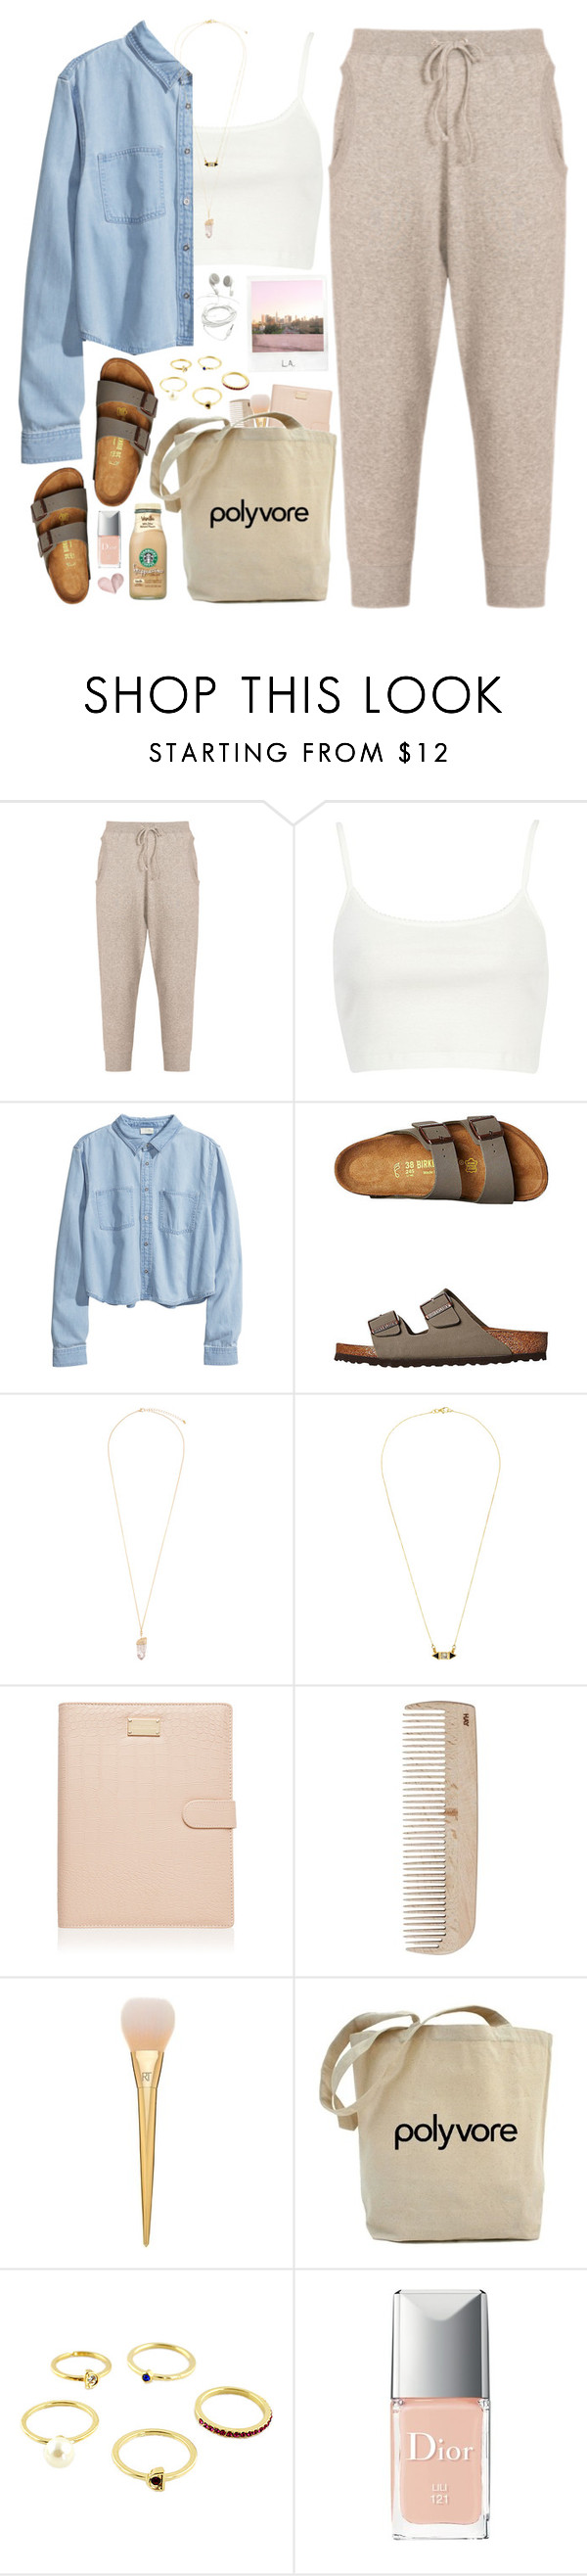 """1921. Trip"" by chocolatepumma ❤ liked on Polyvore featuring Tsumori Chisato, River Island, H&M, Birkenstock, Eloquii, Katie Diamond, Forever New, HAY, Christian Dior and Polaroid"